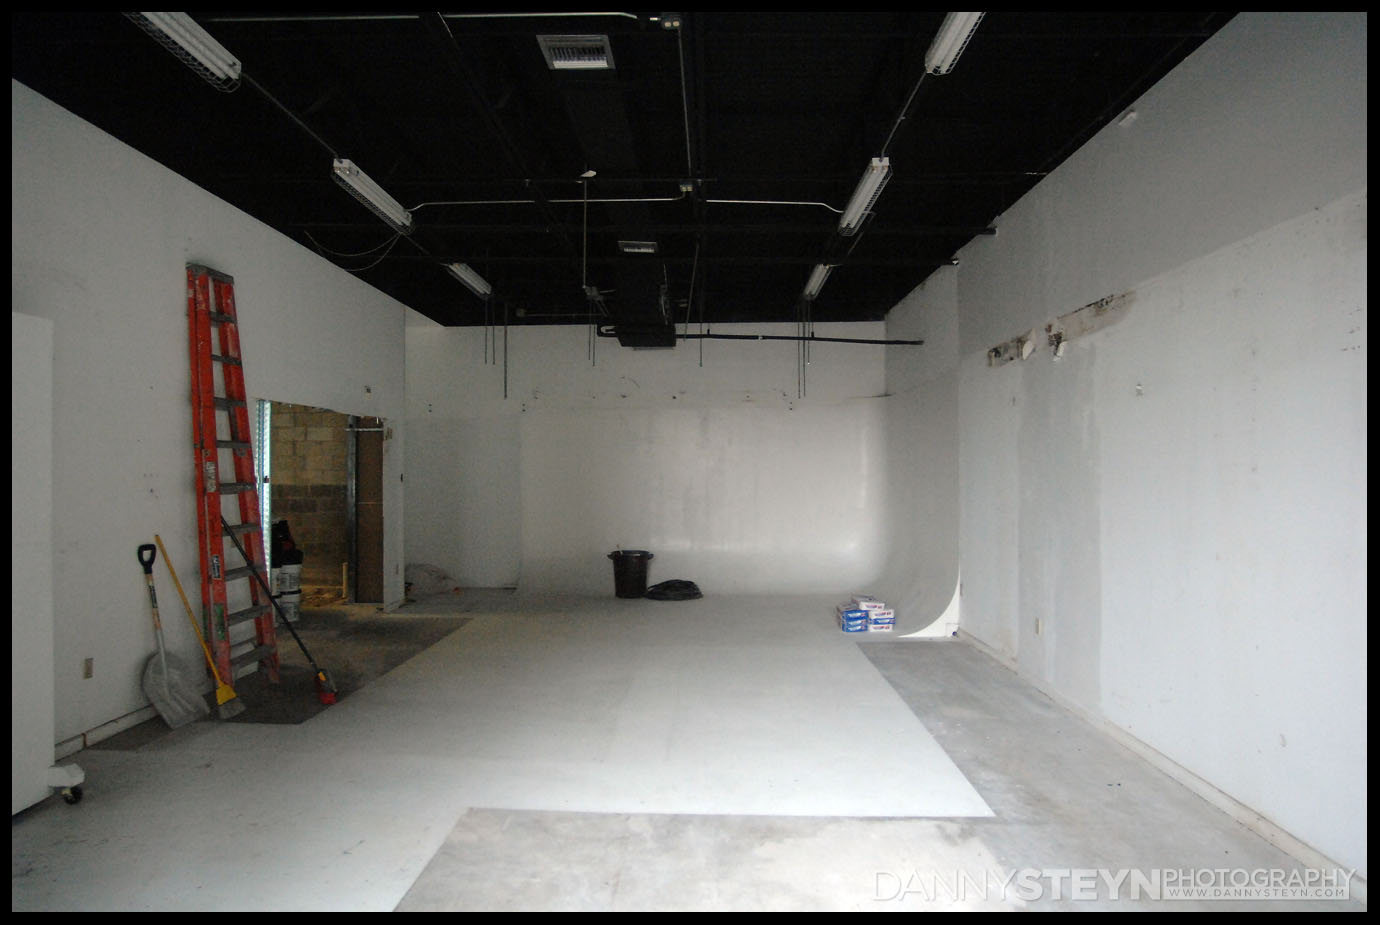 The empty main Portrait Studio with cyc wall and newly discovered leak and drywall rot!